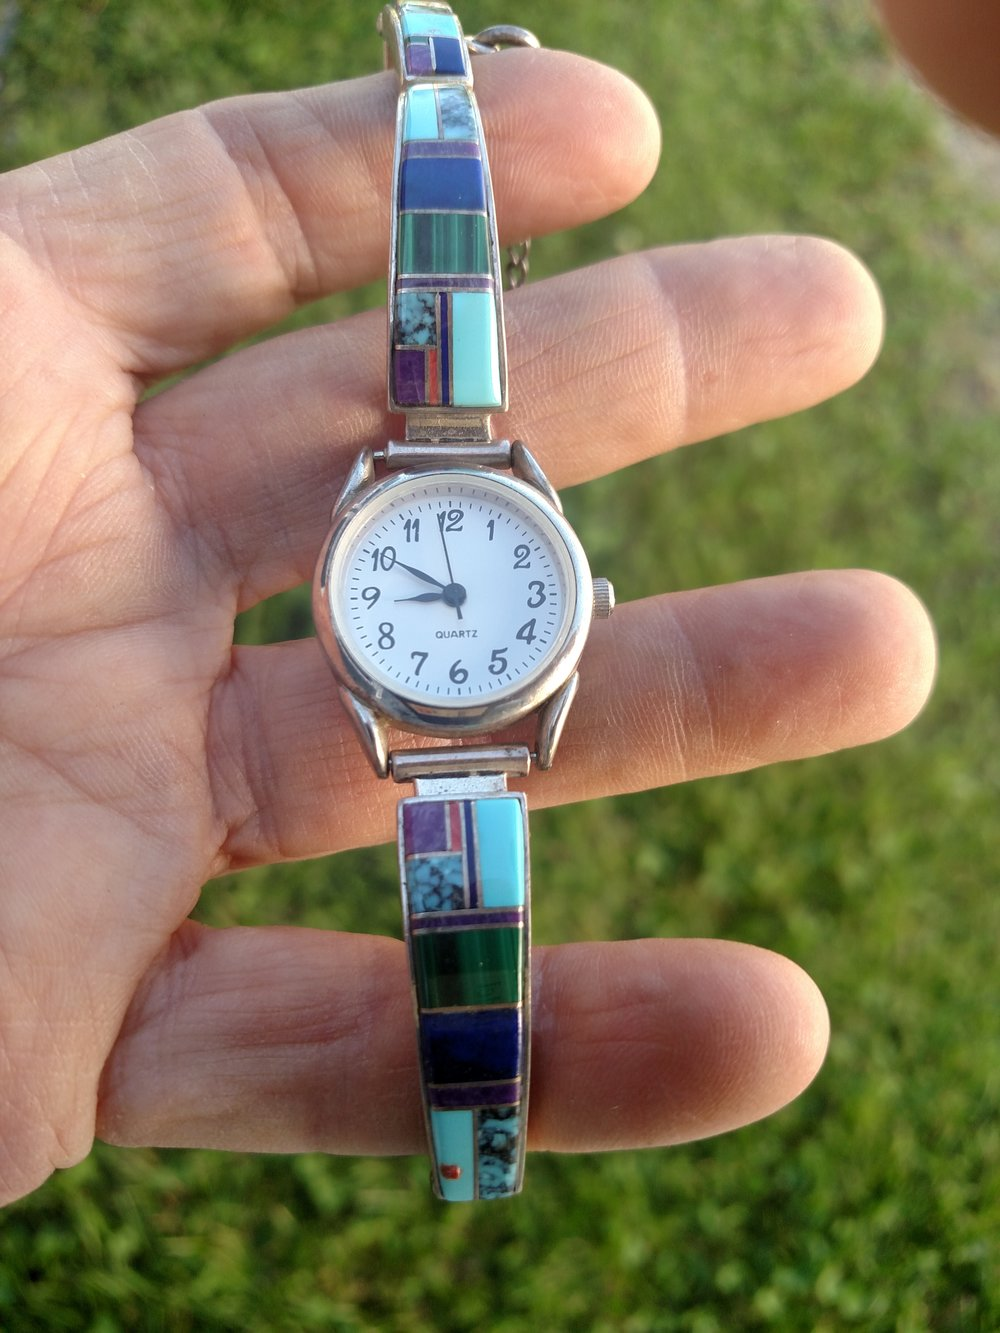 Vintage Zuni watch & band